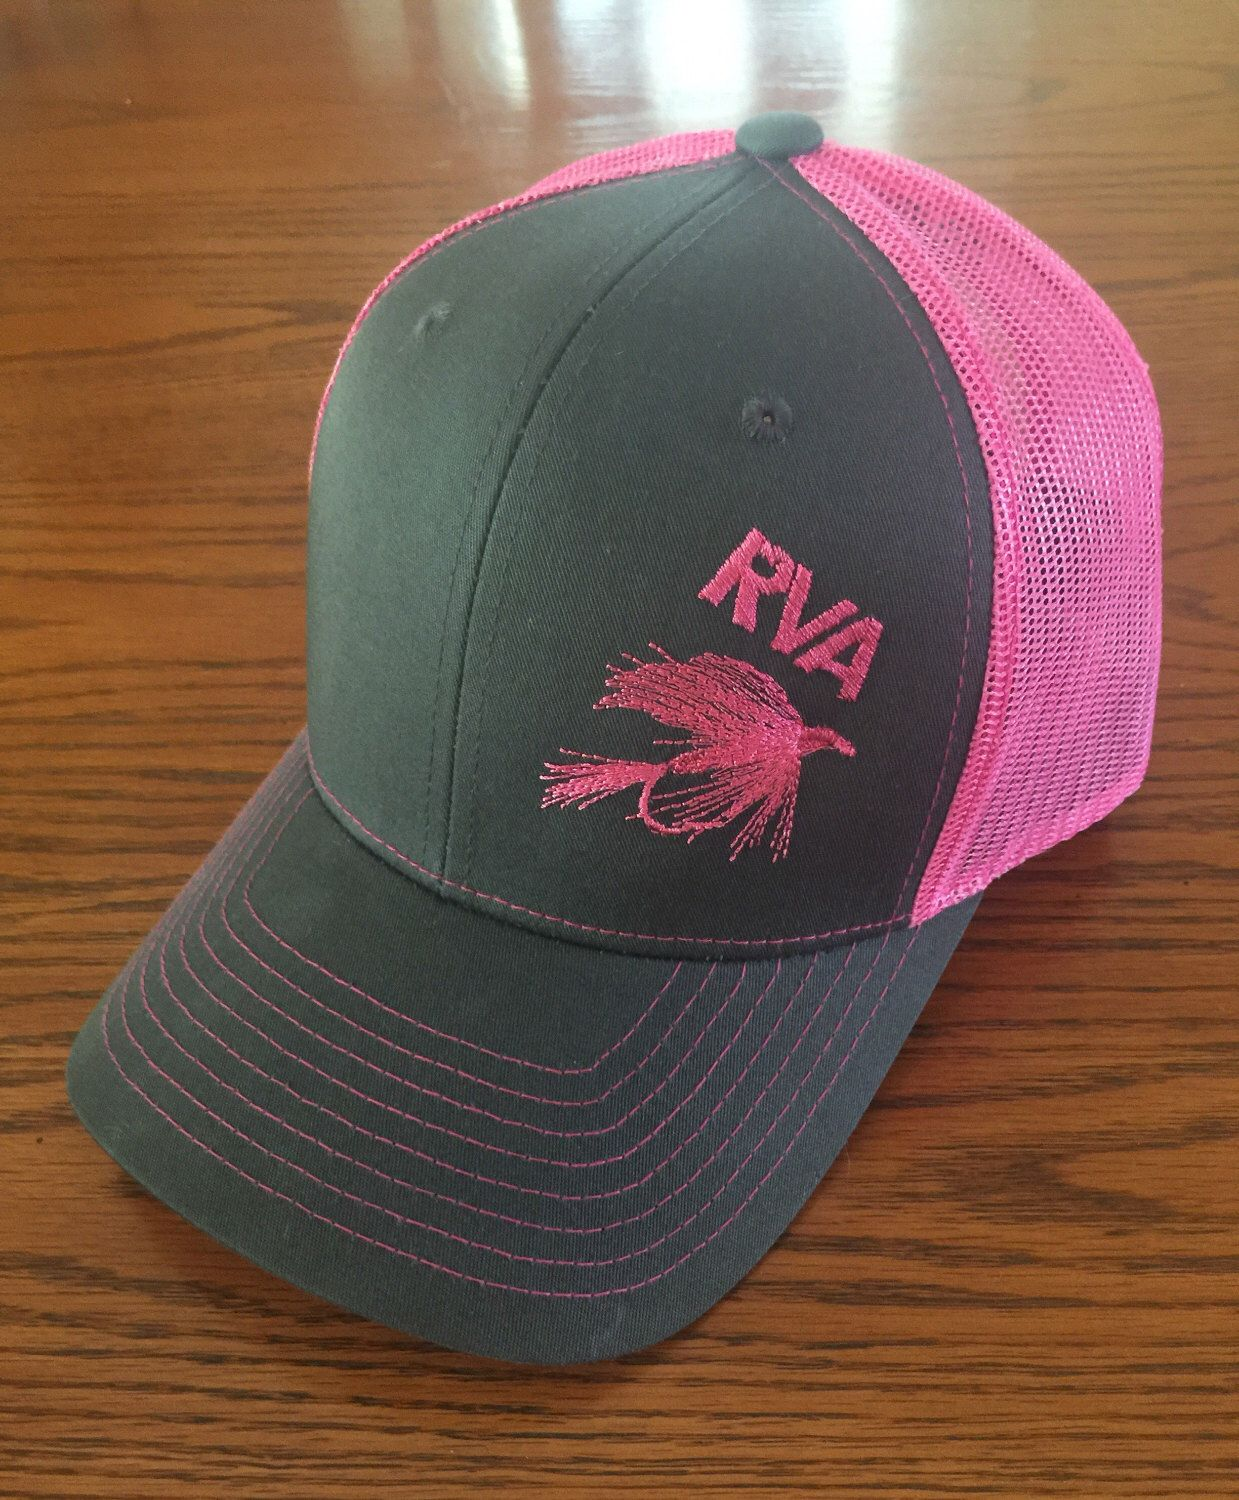 02f12f05 Pin by Rosemary Judy on Products I Love | Fly fishing hats, Fly ...